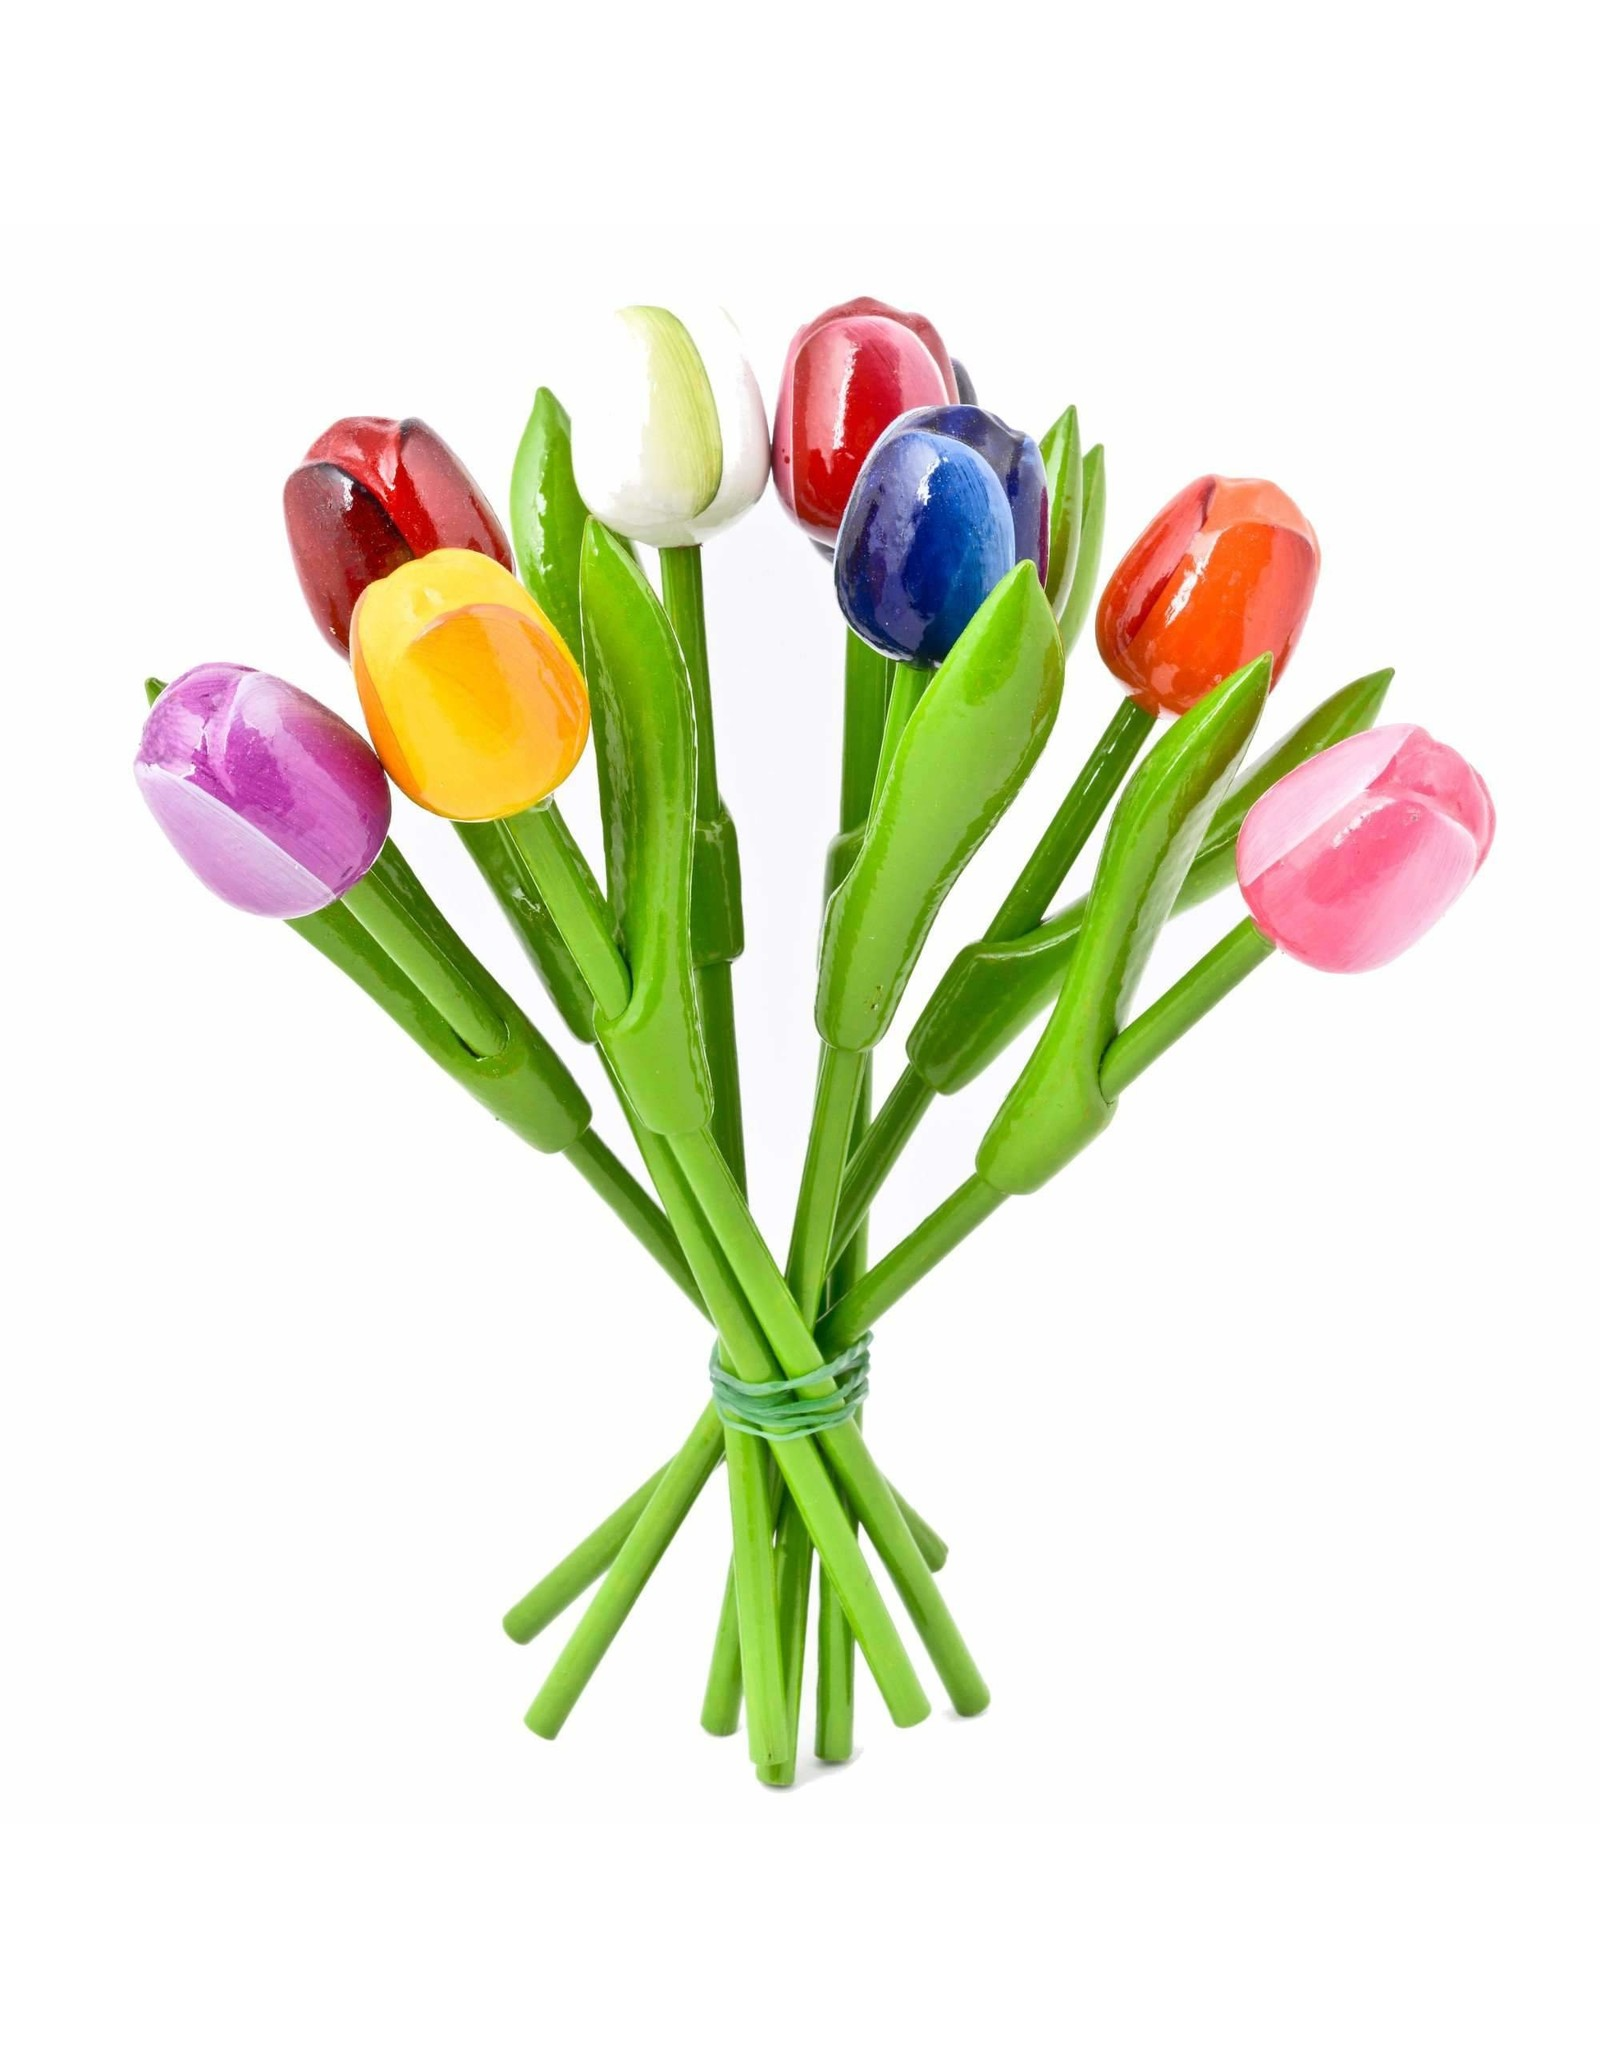 Bouquet of Wooden Tulips, Small, 9 pieces